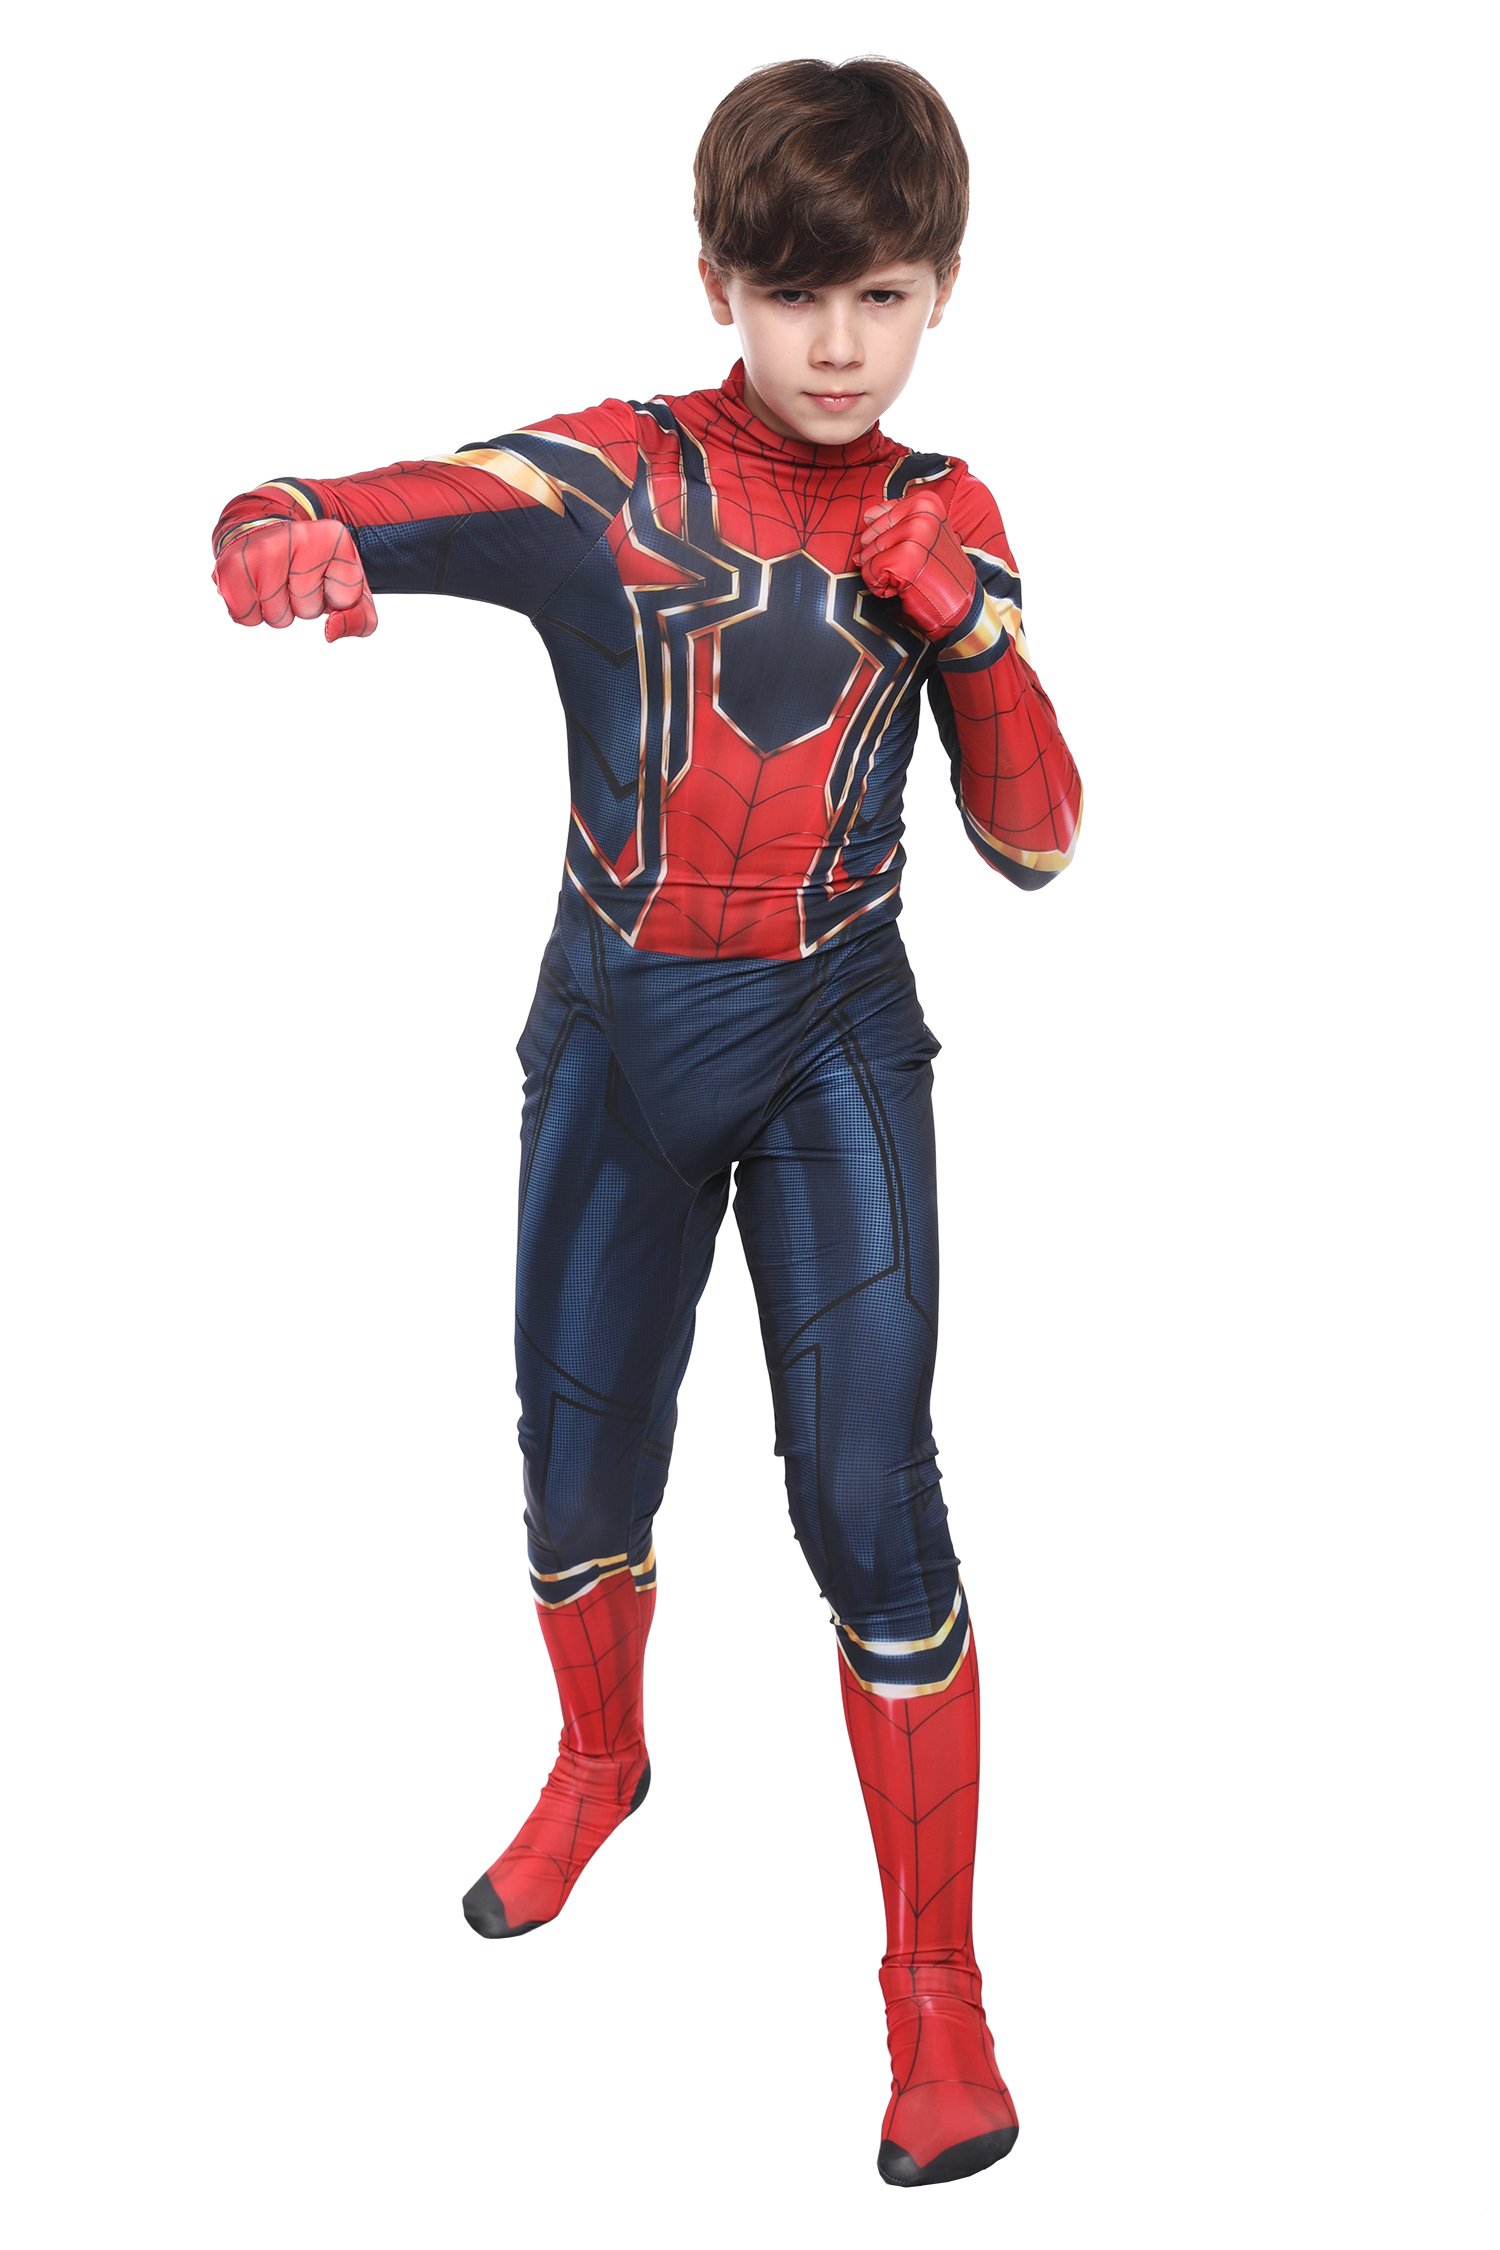 Halloween costume child boys Kids Spider man Deluxe fancy cosplay us party new